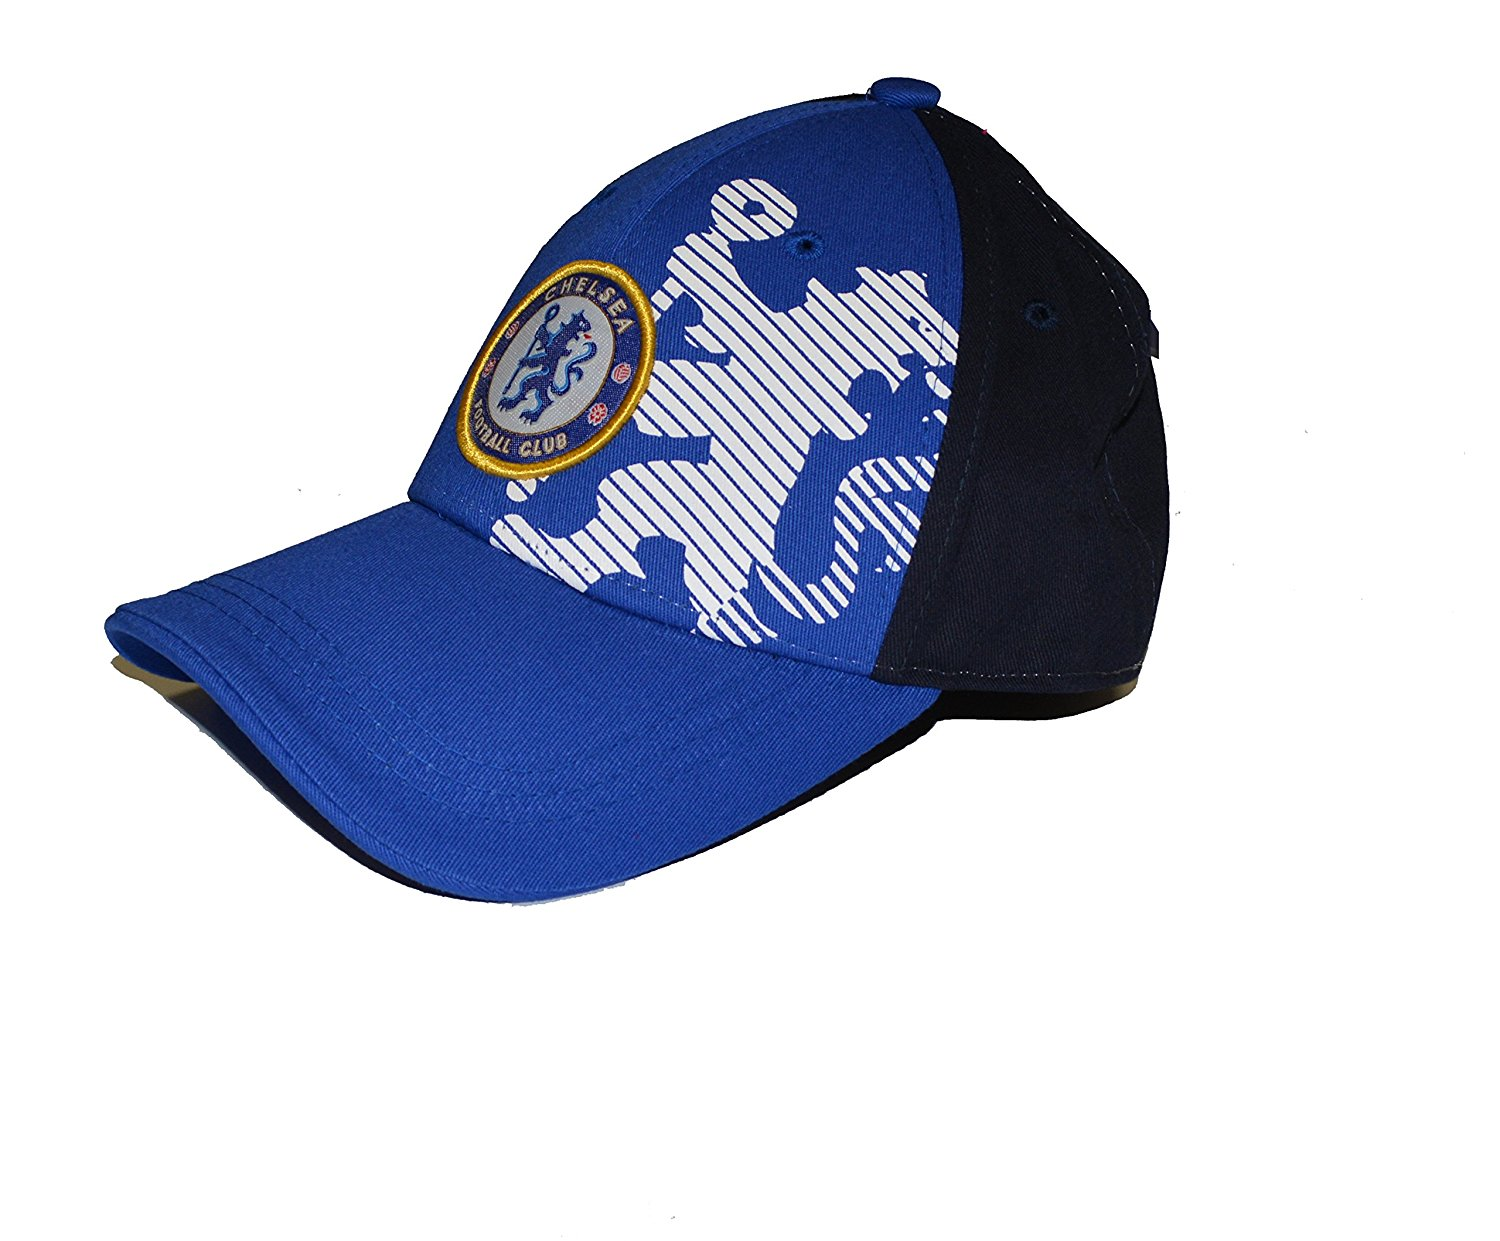 Chelsea Fc Flex Cap Six Panel Navy Blue White Lion  31b0696103a2